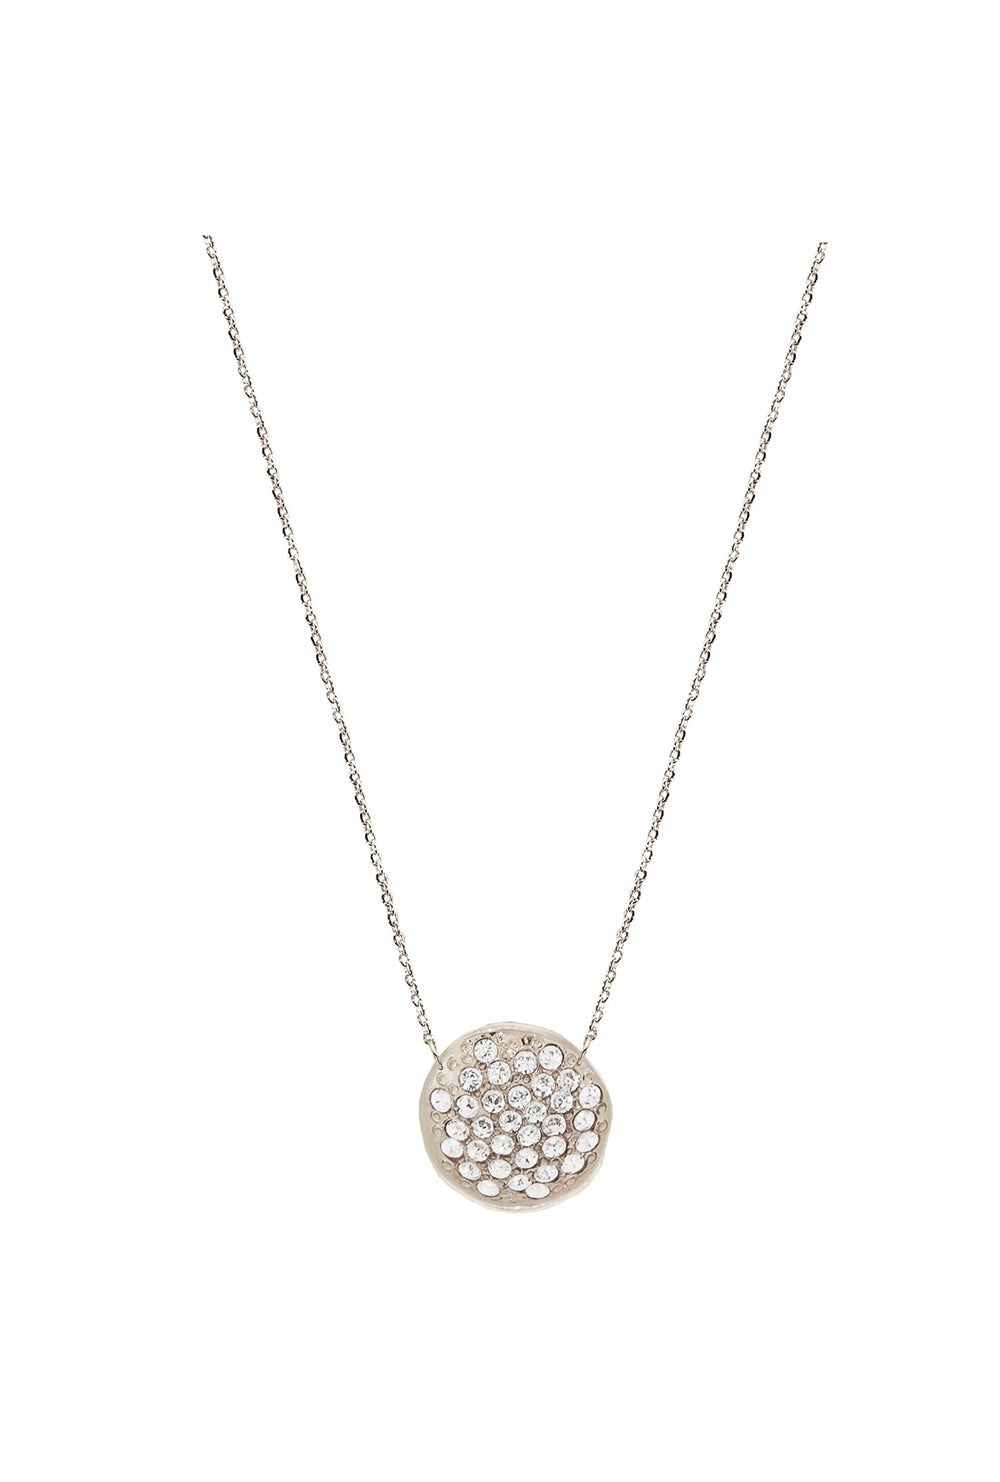 white gold cz pendant necklace